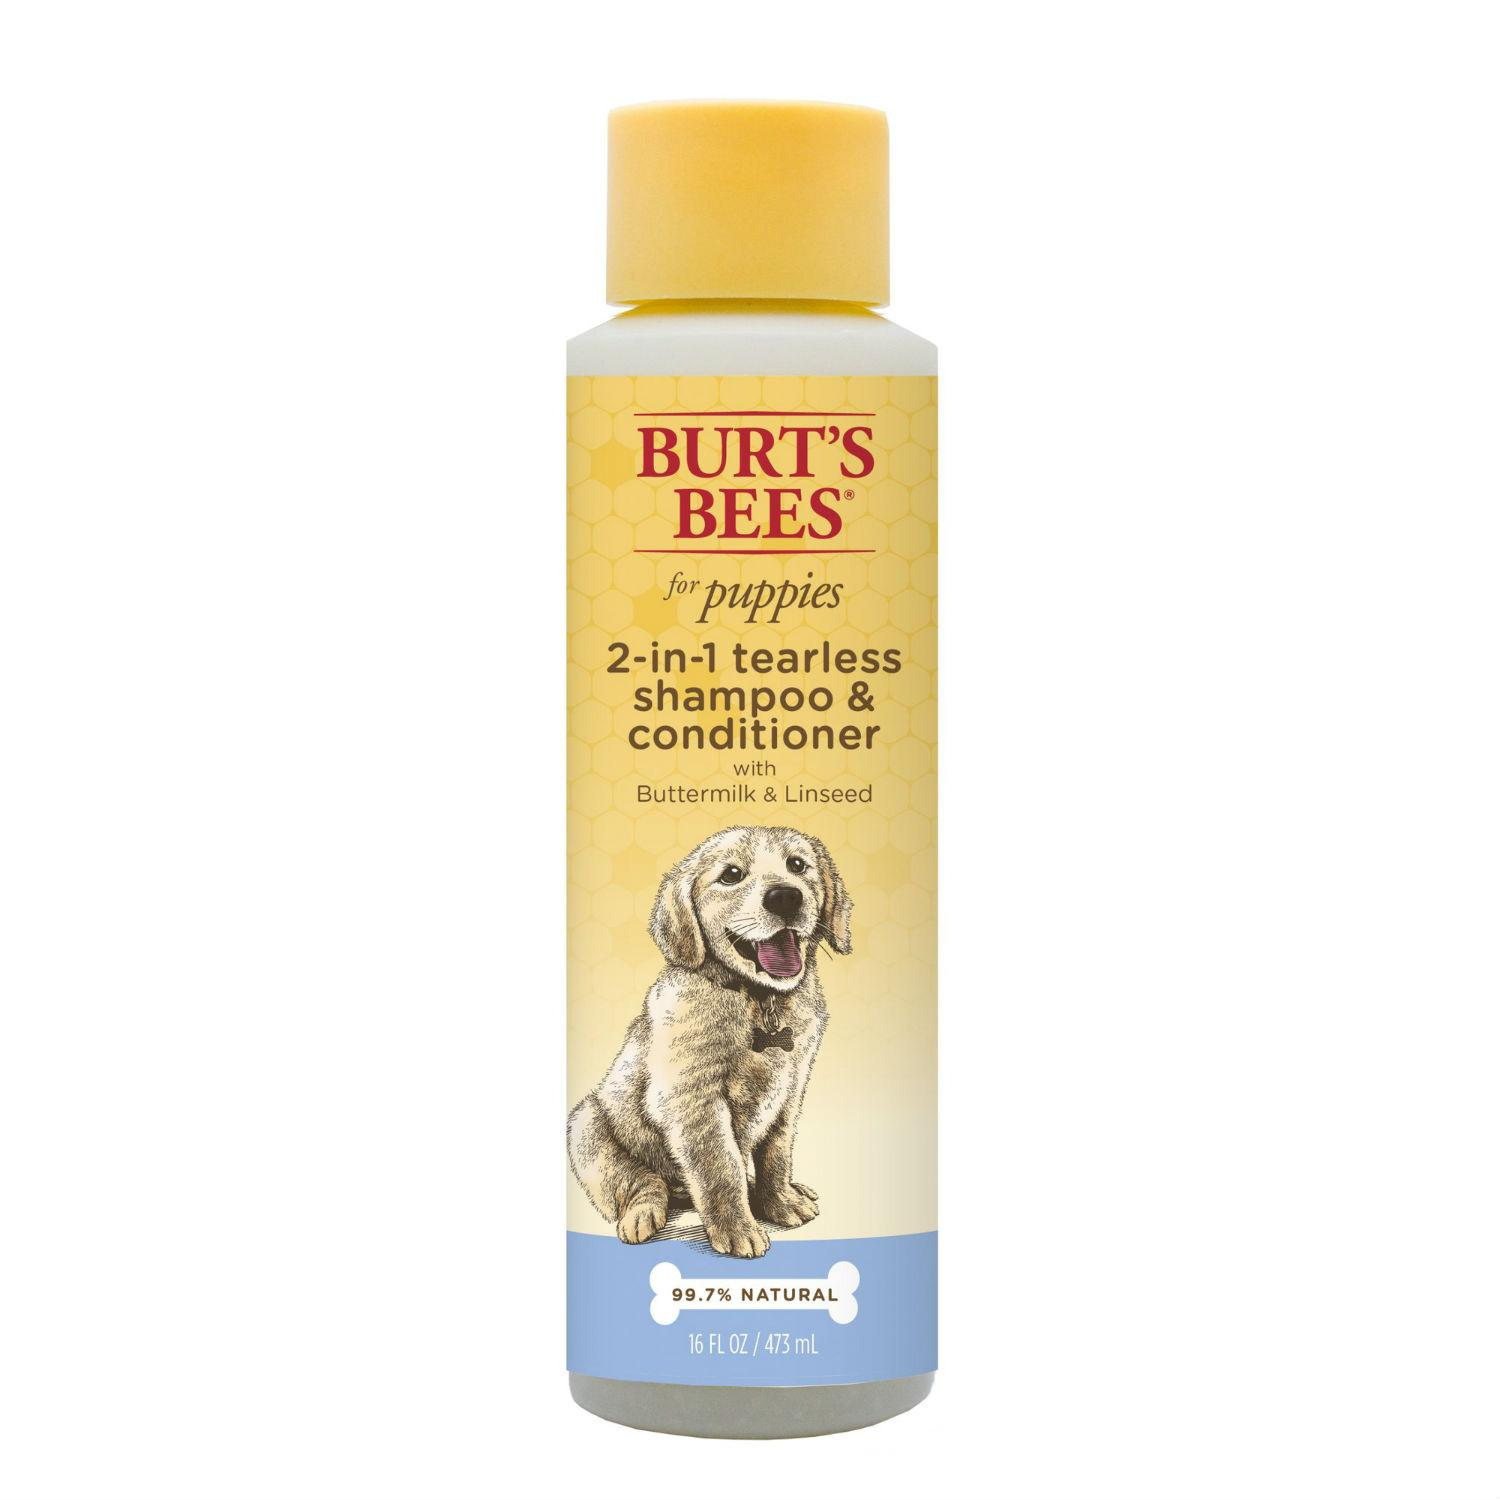 Burt's Bees for Puppies Tearless 2 in 1 Shampoo and Conditioner - Buttermilk and Linseed Oil